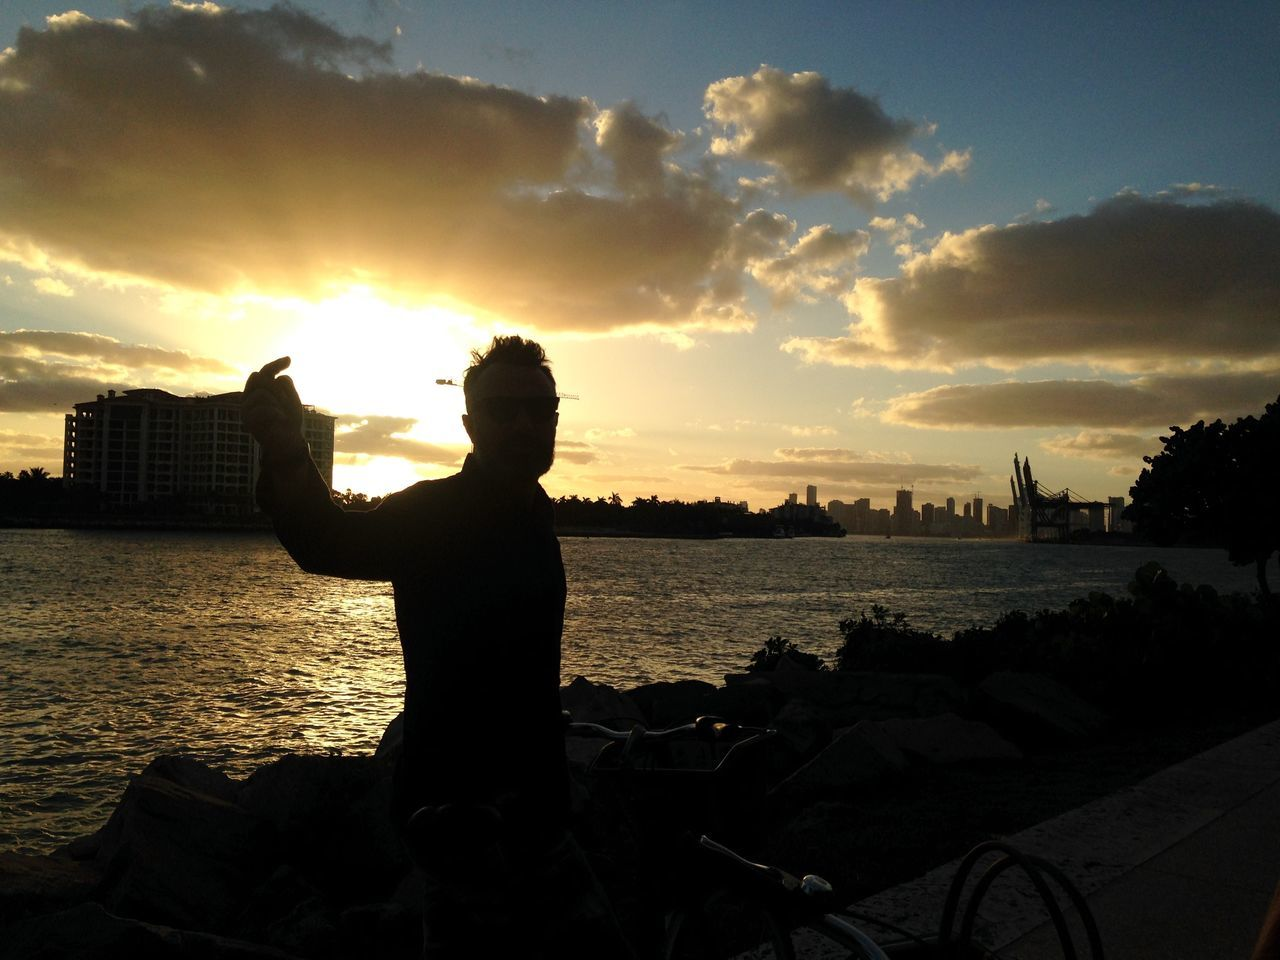 sunset, building exterior, architecture, built structure, water, one person, city, sky, river, cityscape, outdoors, silhouette, real people, transportation, cloud - sky, skyscraper, sitting, nature, men, day, people